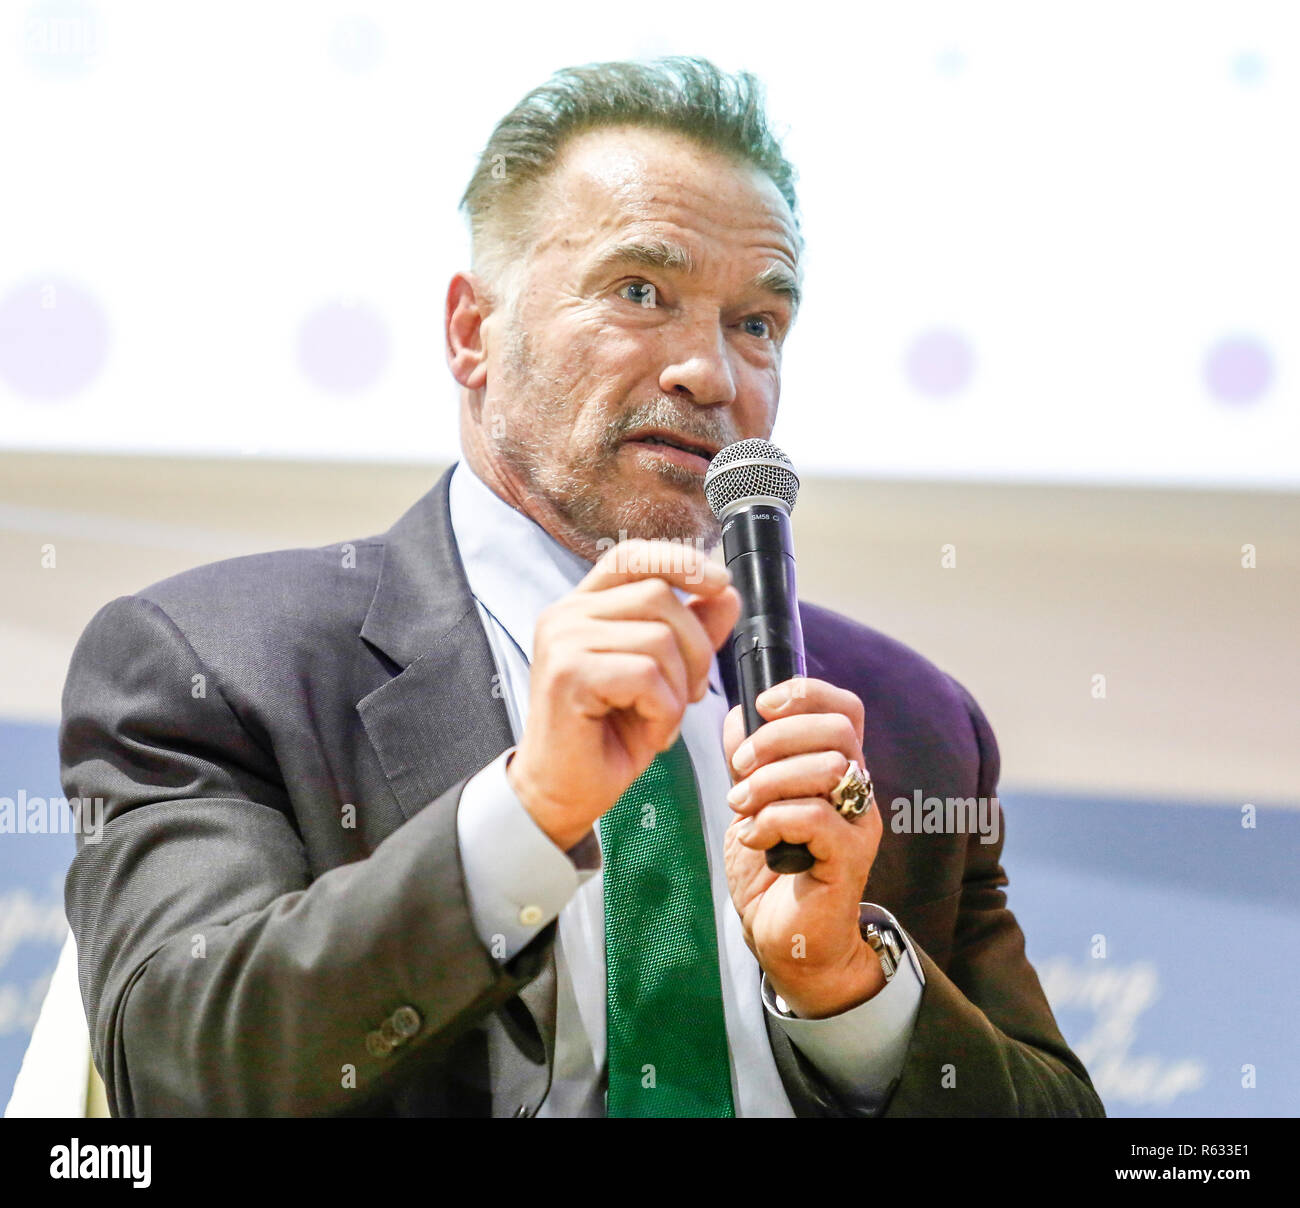 Katowice, Poland. 3rd December, 2018. Arnold Schwarzenegger, USC Schwarzenegger Institute Chair and ex-Governor of California during the Action Hub Opening panel at the COP24 Katowice, Poland on the 3rd of December 2018. COP24 is organized by UN Framework Convention for Climate Change (UNFCCC). Credit: Michal Busko/Alamy Live News - Stock Image